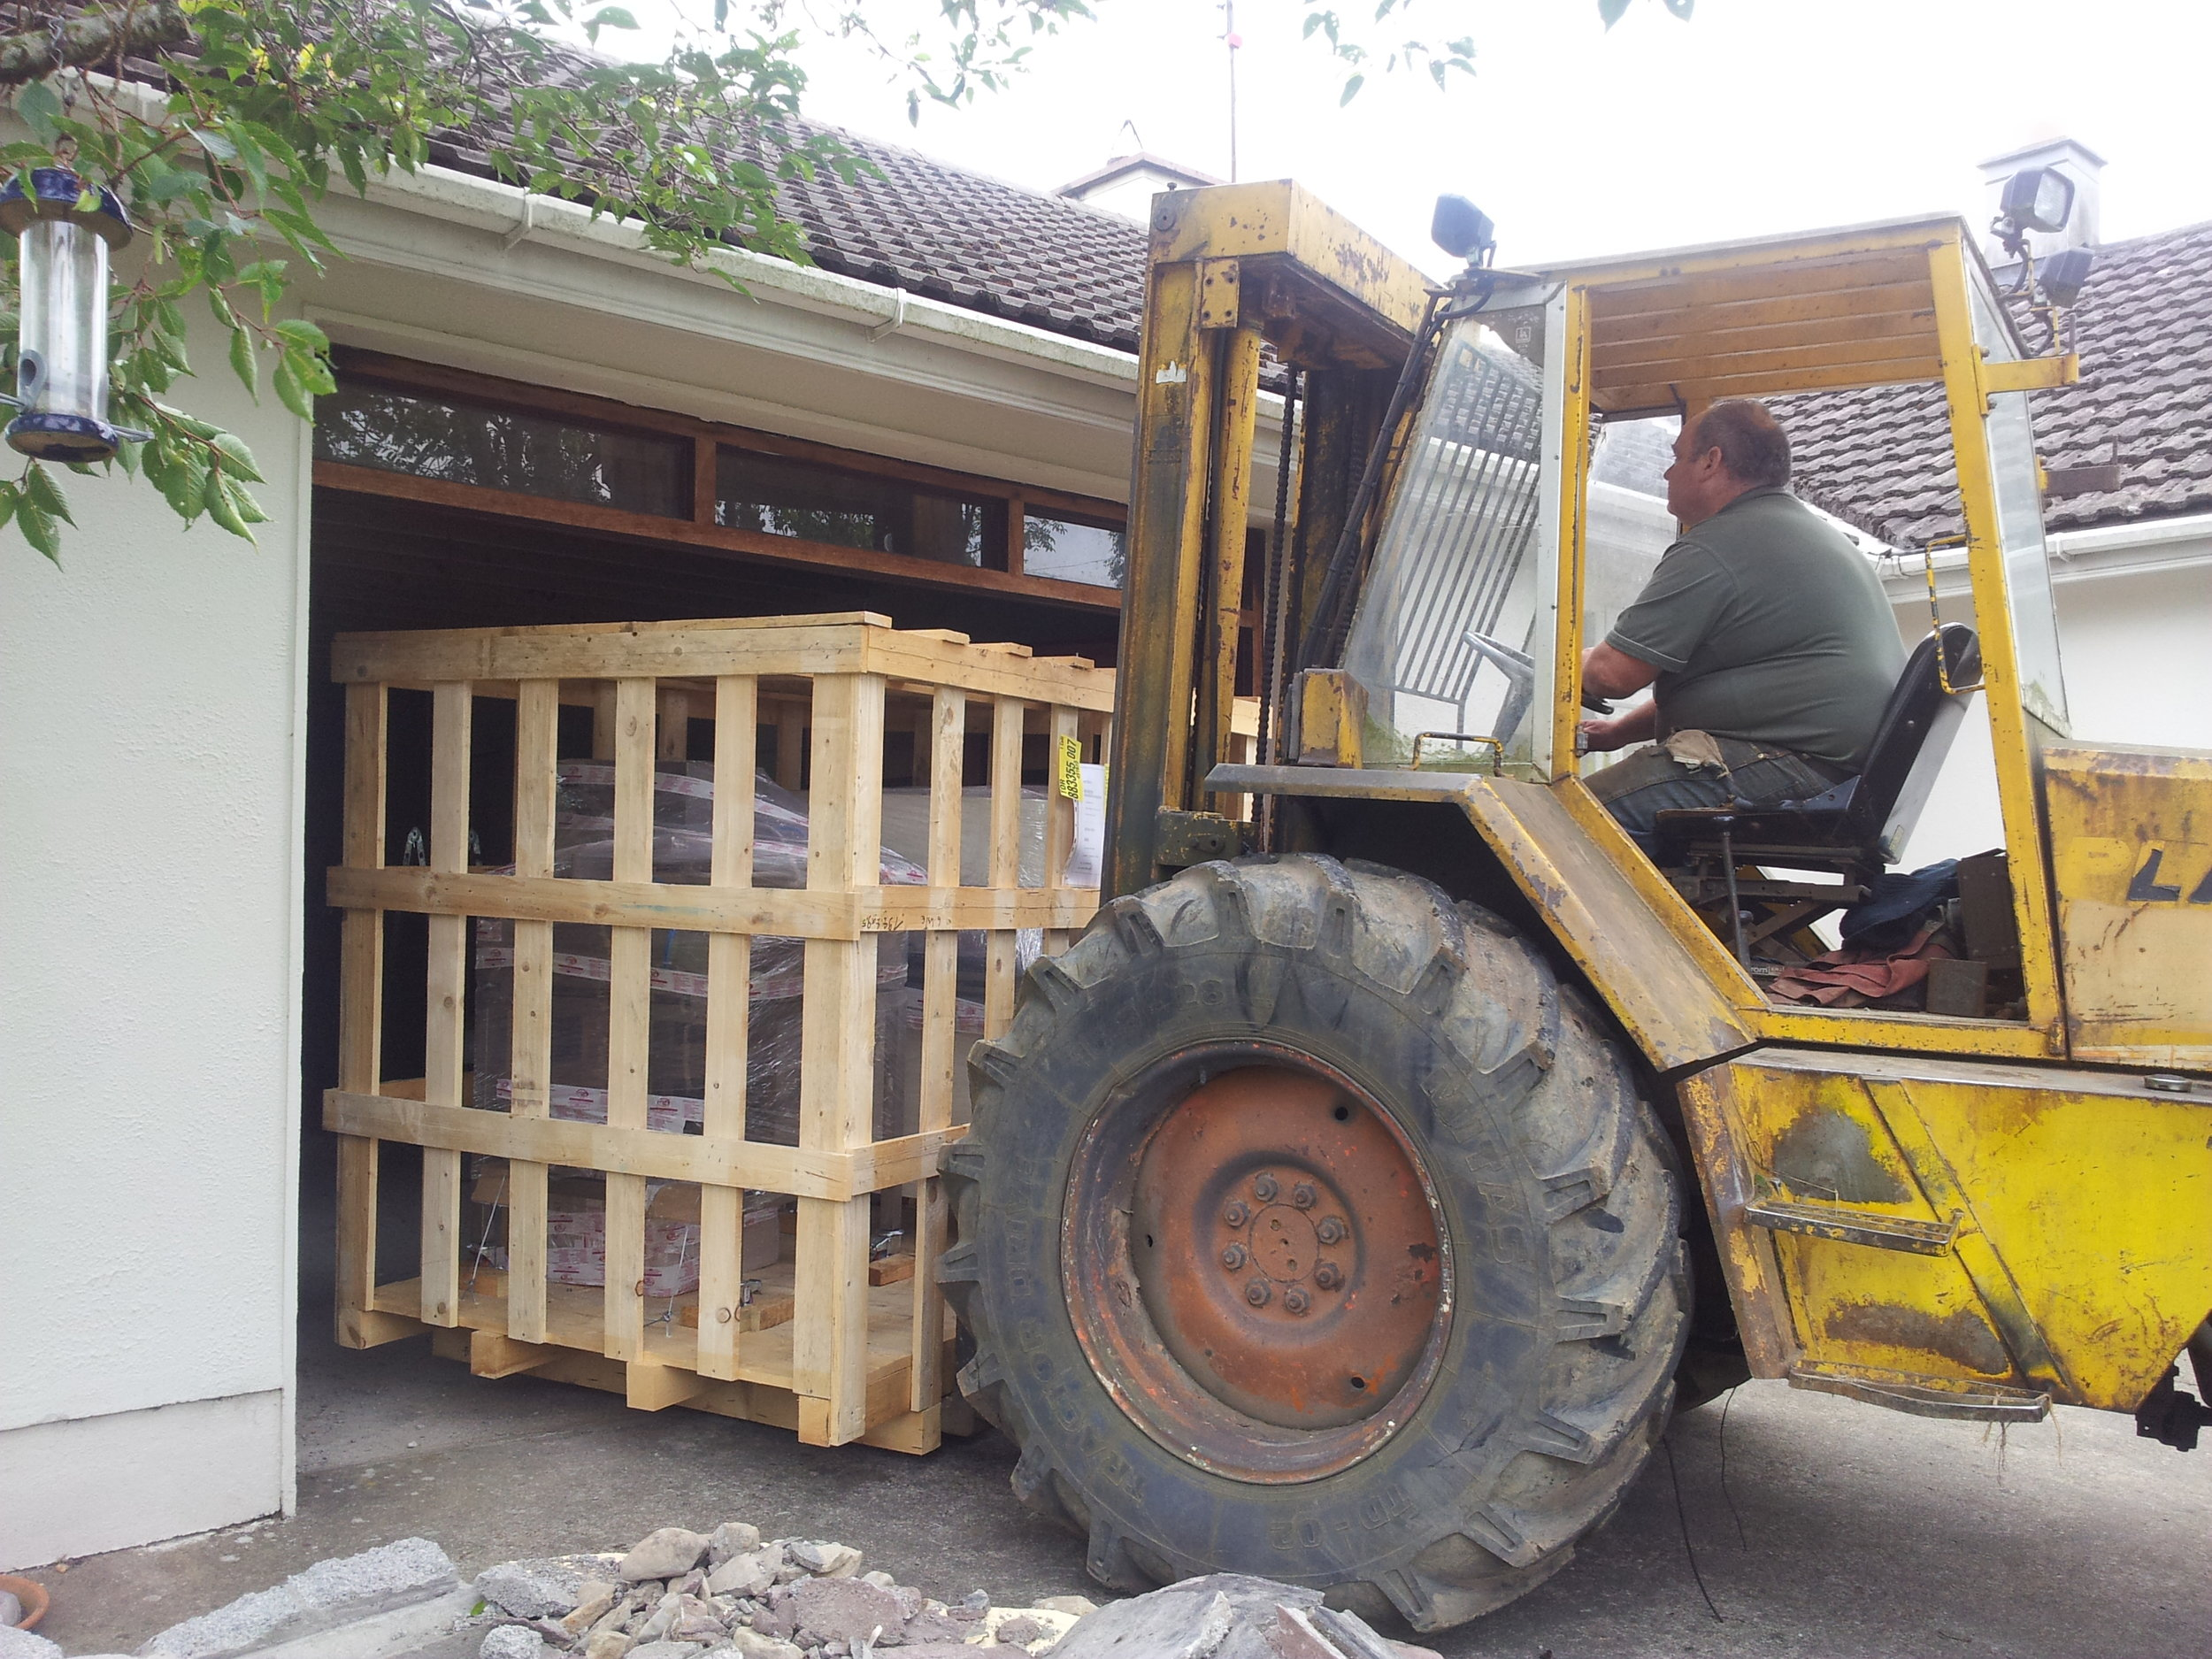 In 2013, with the support from my darling husband, Wicklow LEO, and MFI Ireland,I converted our garage into a purpose-built Nougat Kitchen. In this photo Joe (our neighbour) brings the pallet containing my new machines into a building site A.K.A - Nougat Kitchen.